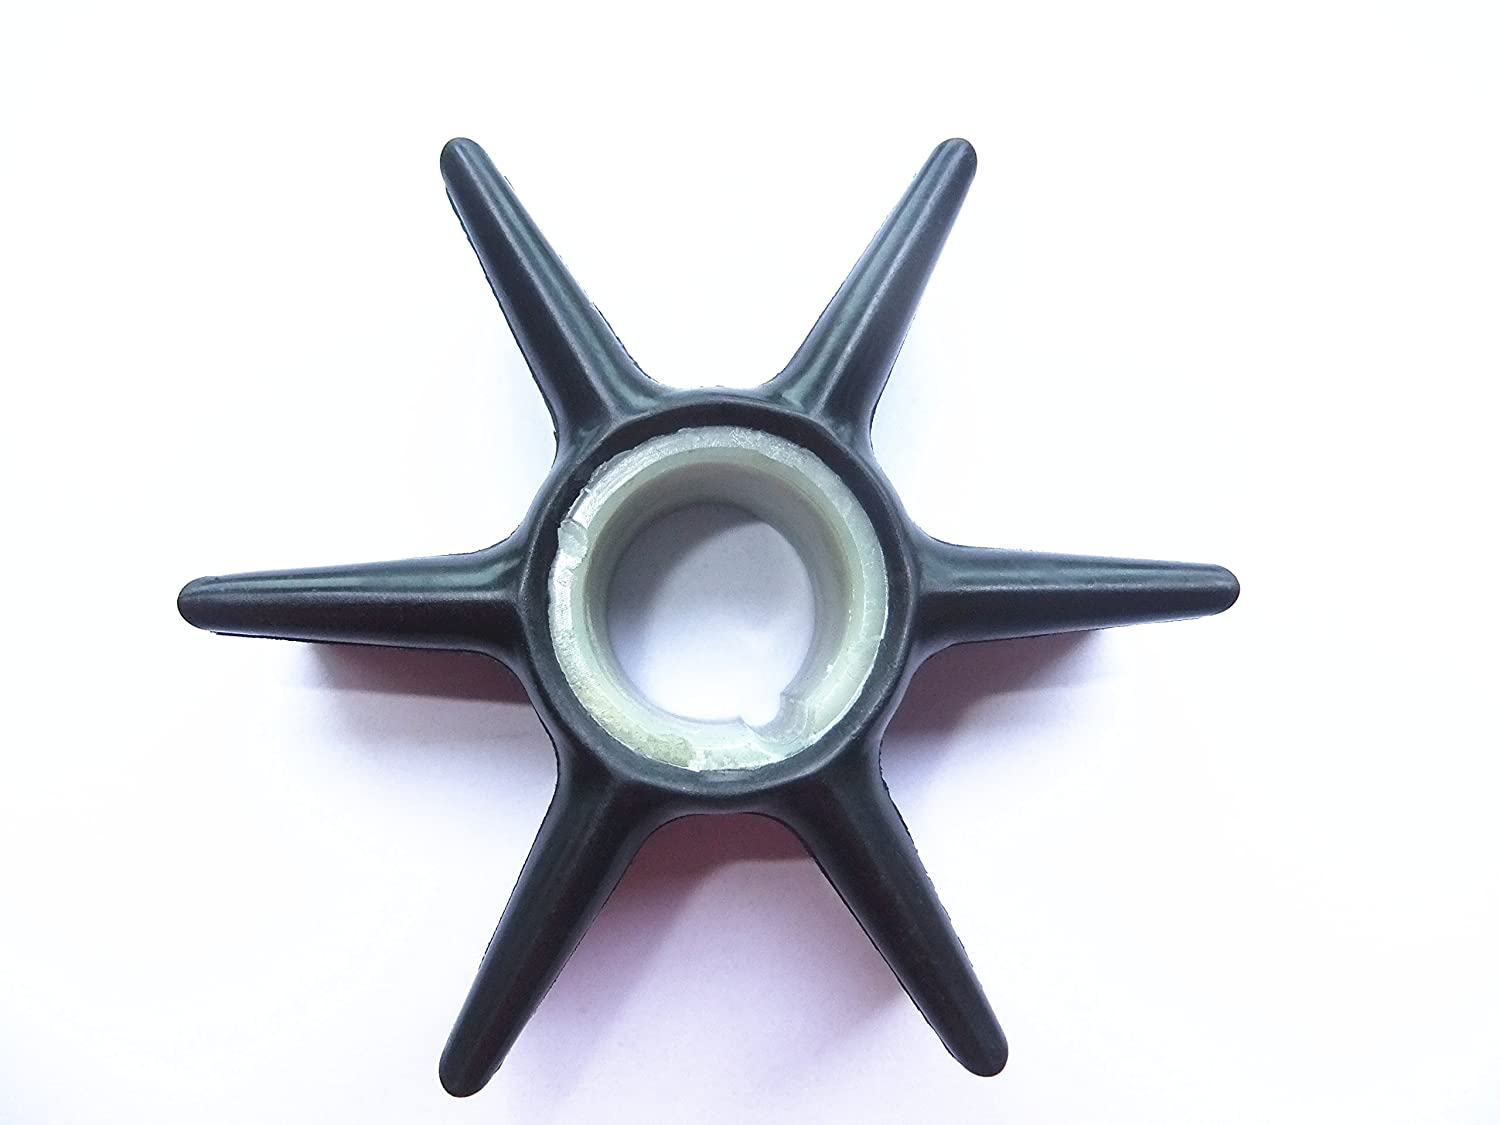 47-43026 47-43026T2 399289 19210-ZW1-003 18-3056 Impeller for Mercury  Mariner/Honda / Johnson Evinrude 40hp - 250hp Outboard Motors